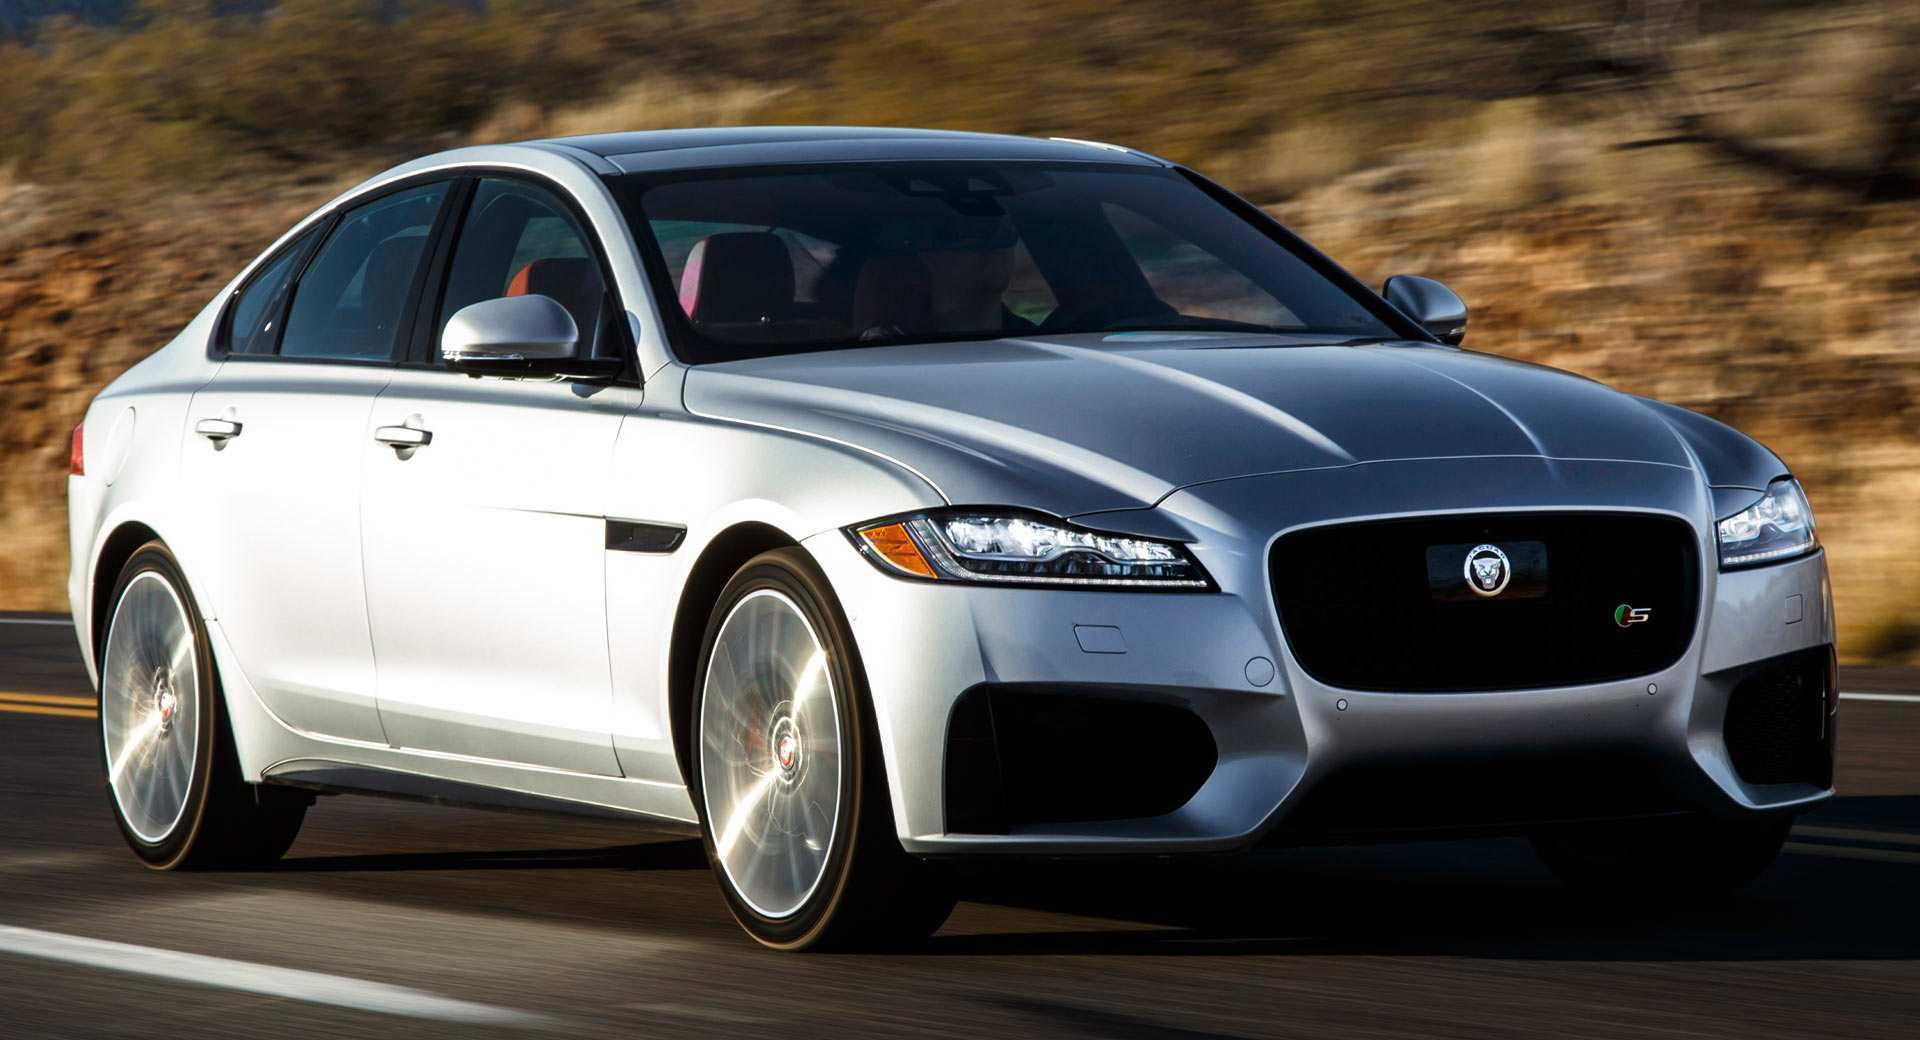 46 The 2020 Jaguar XF Concept